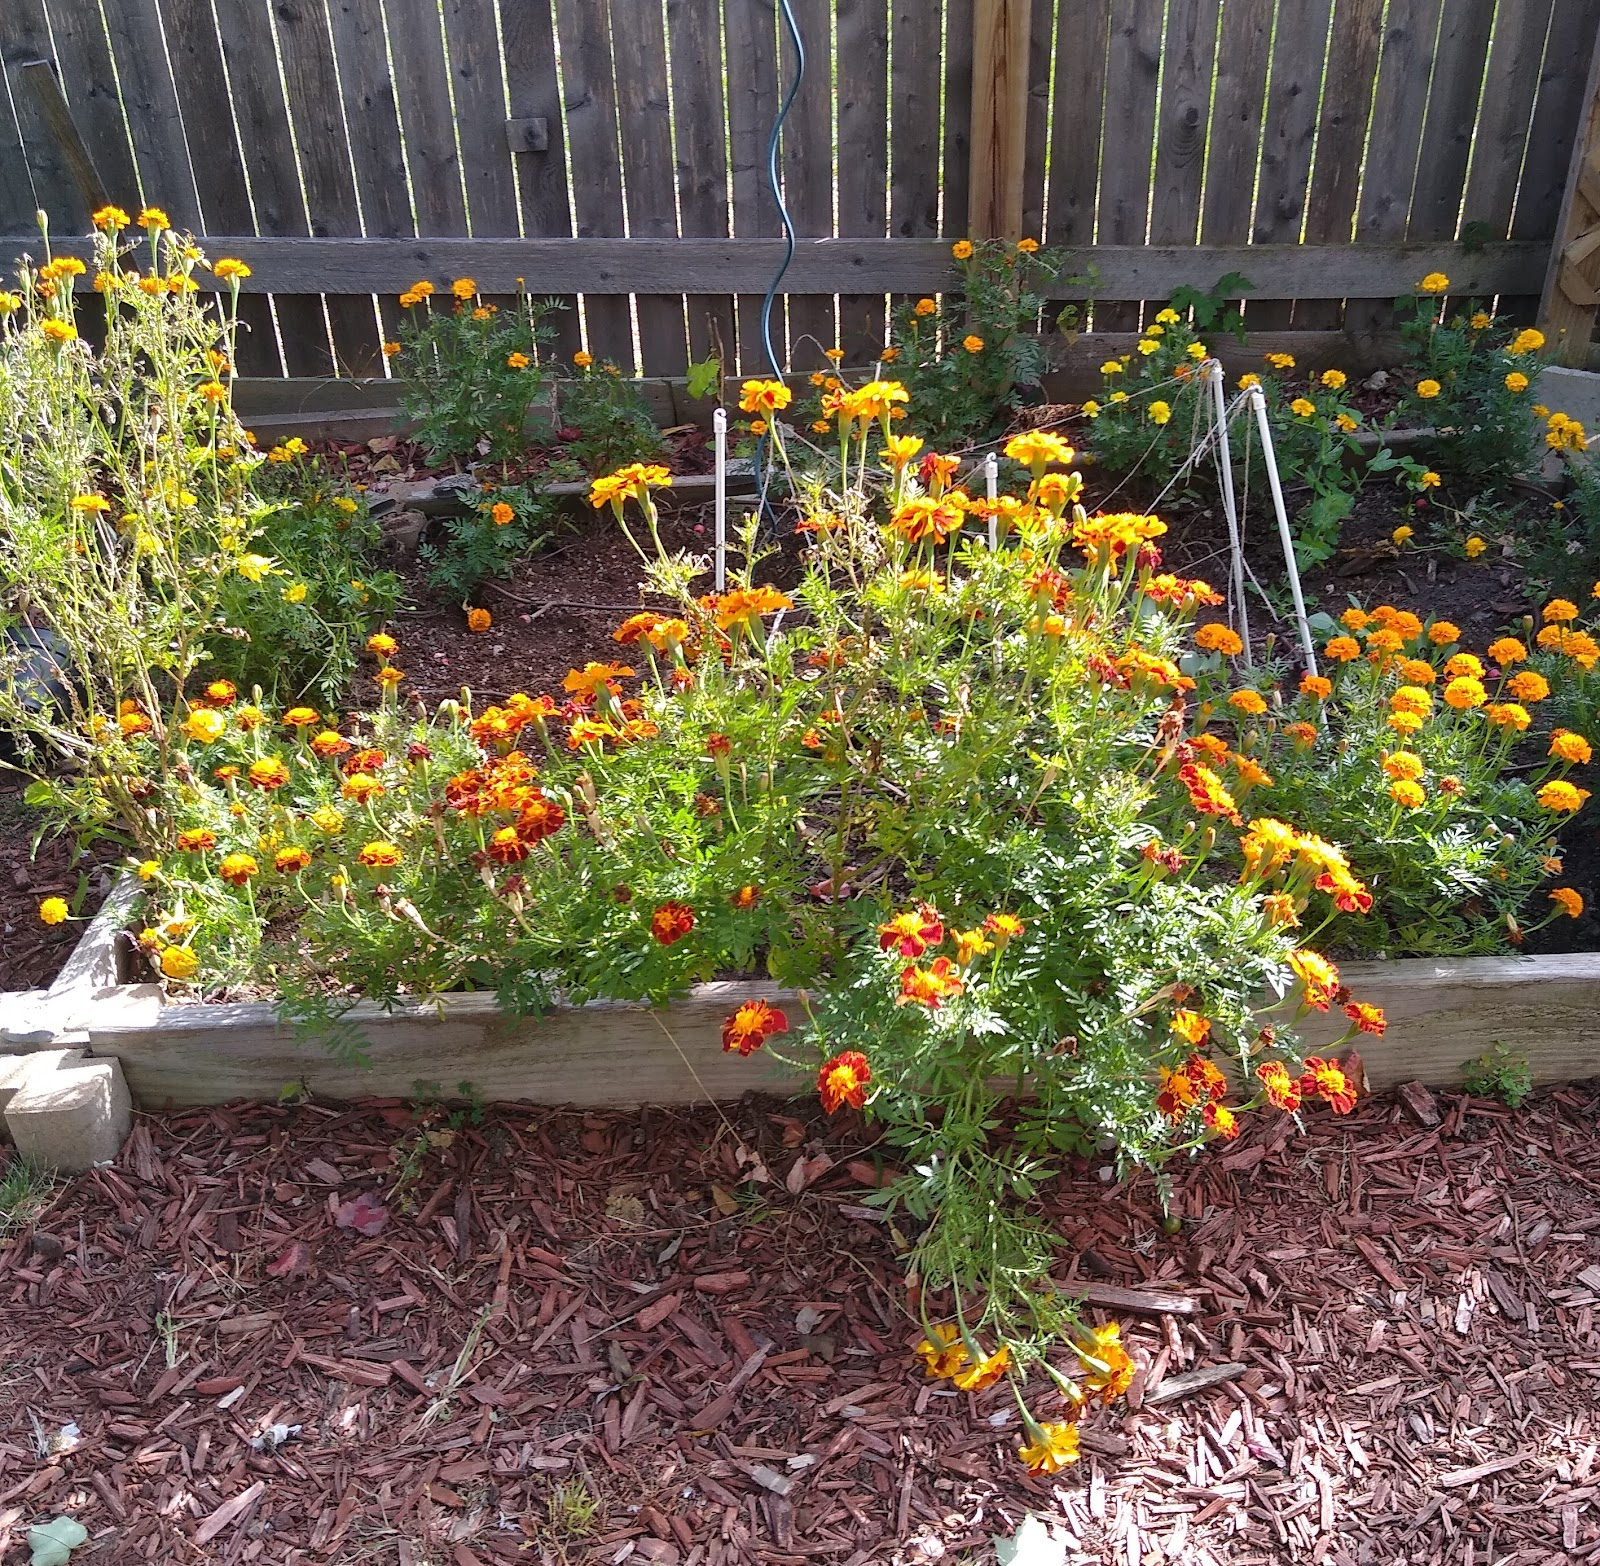 marigolds in a raised bed picture